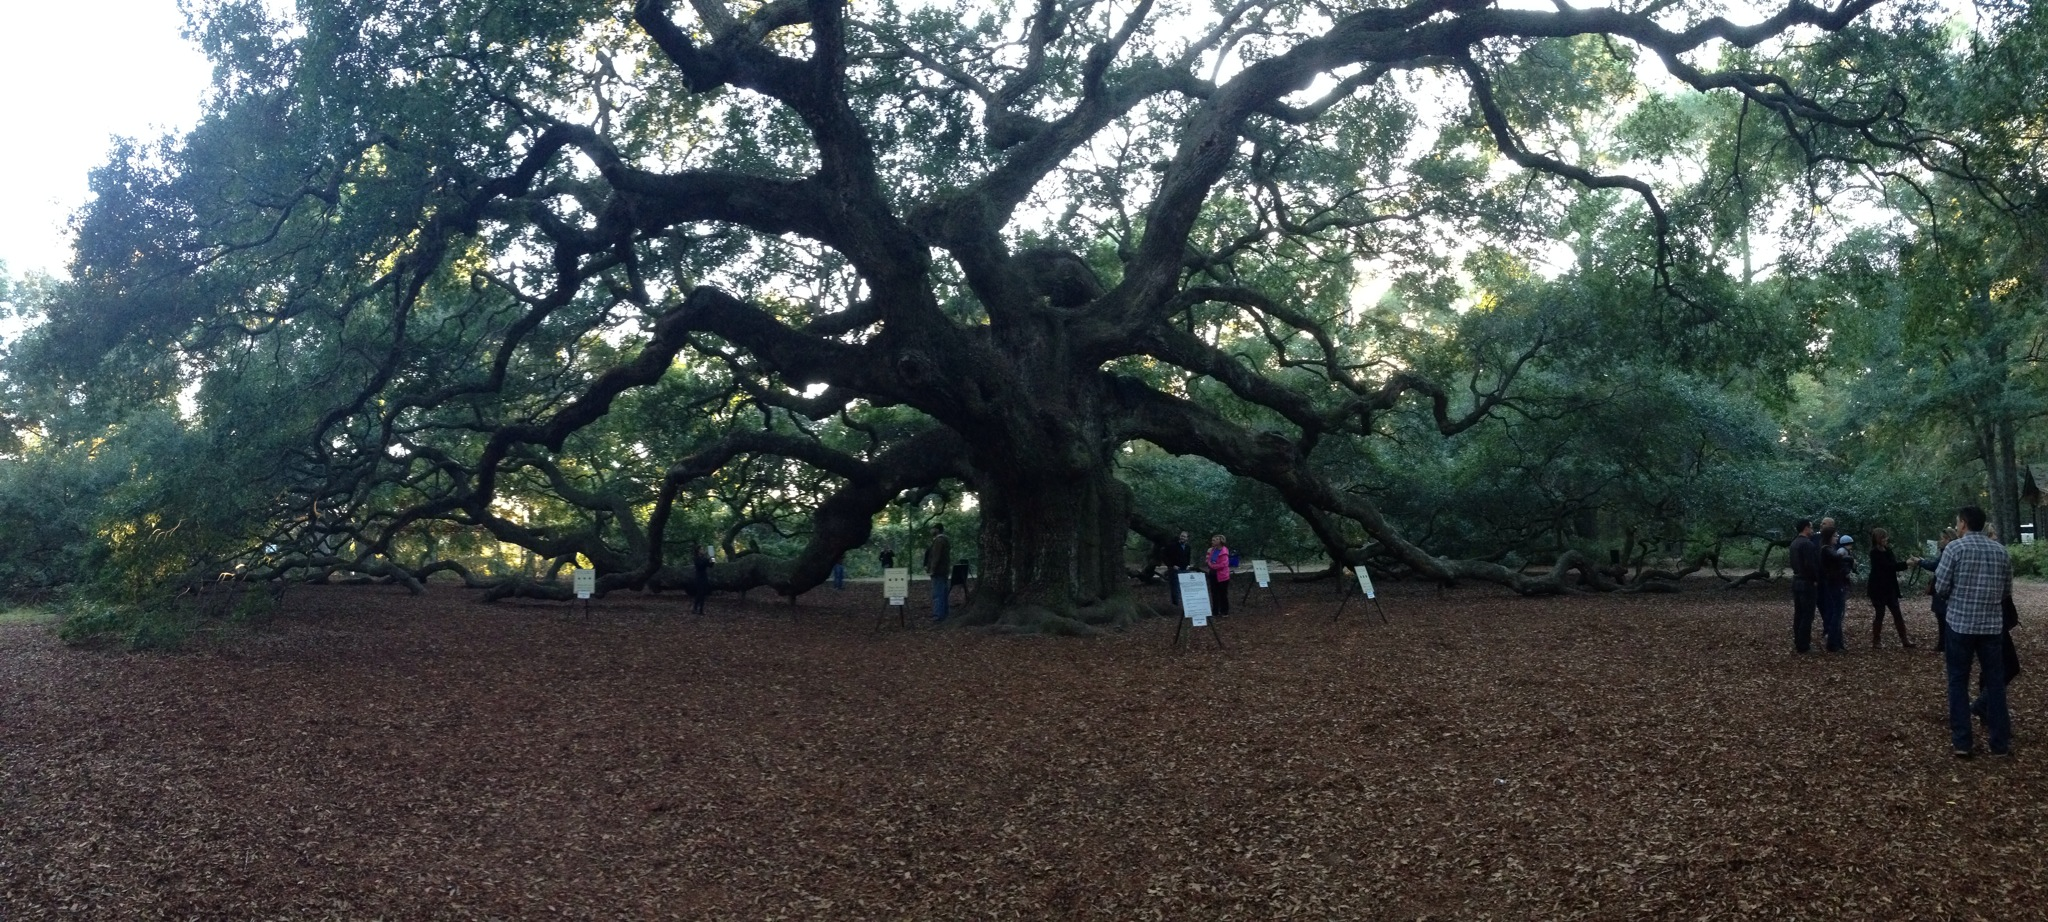 angel oak tree